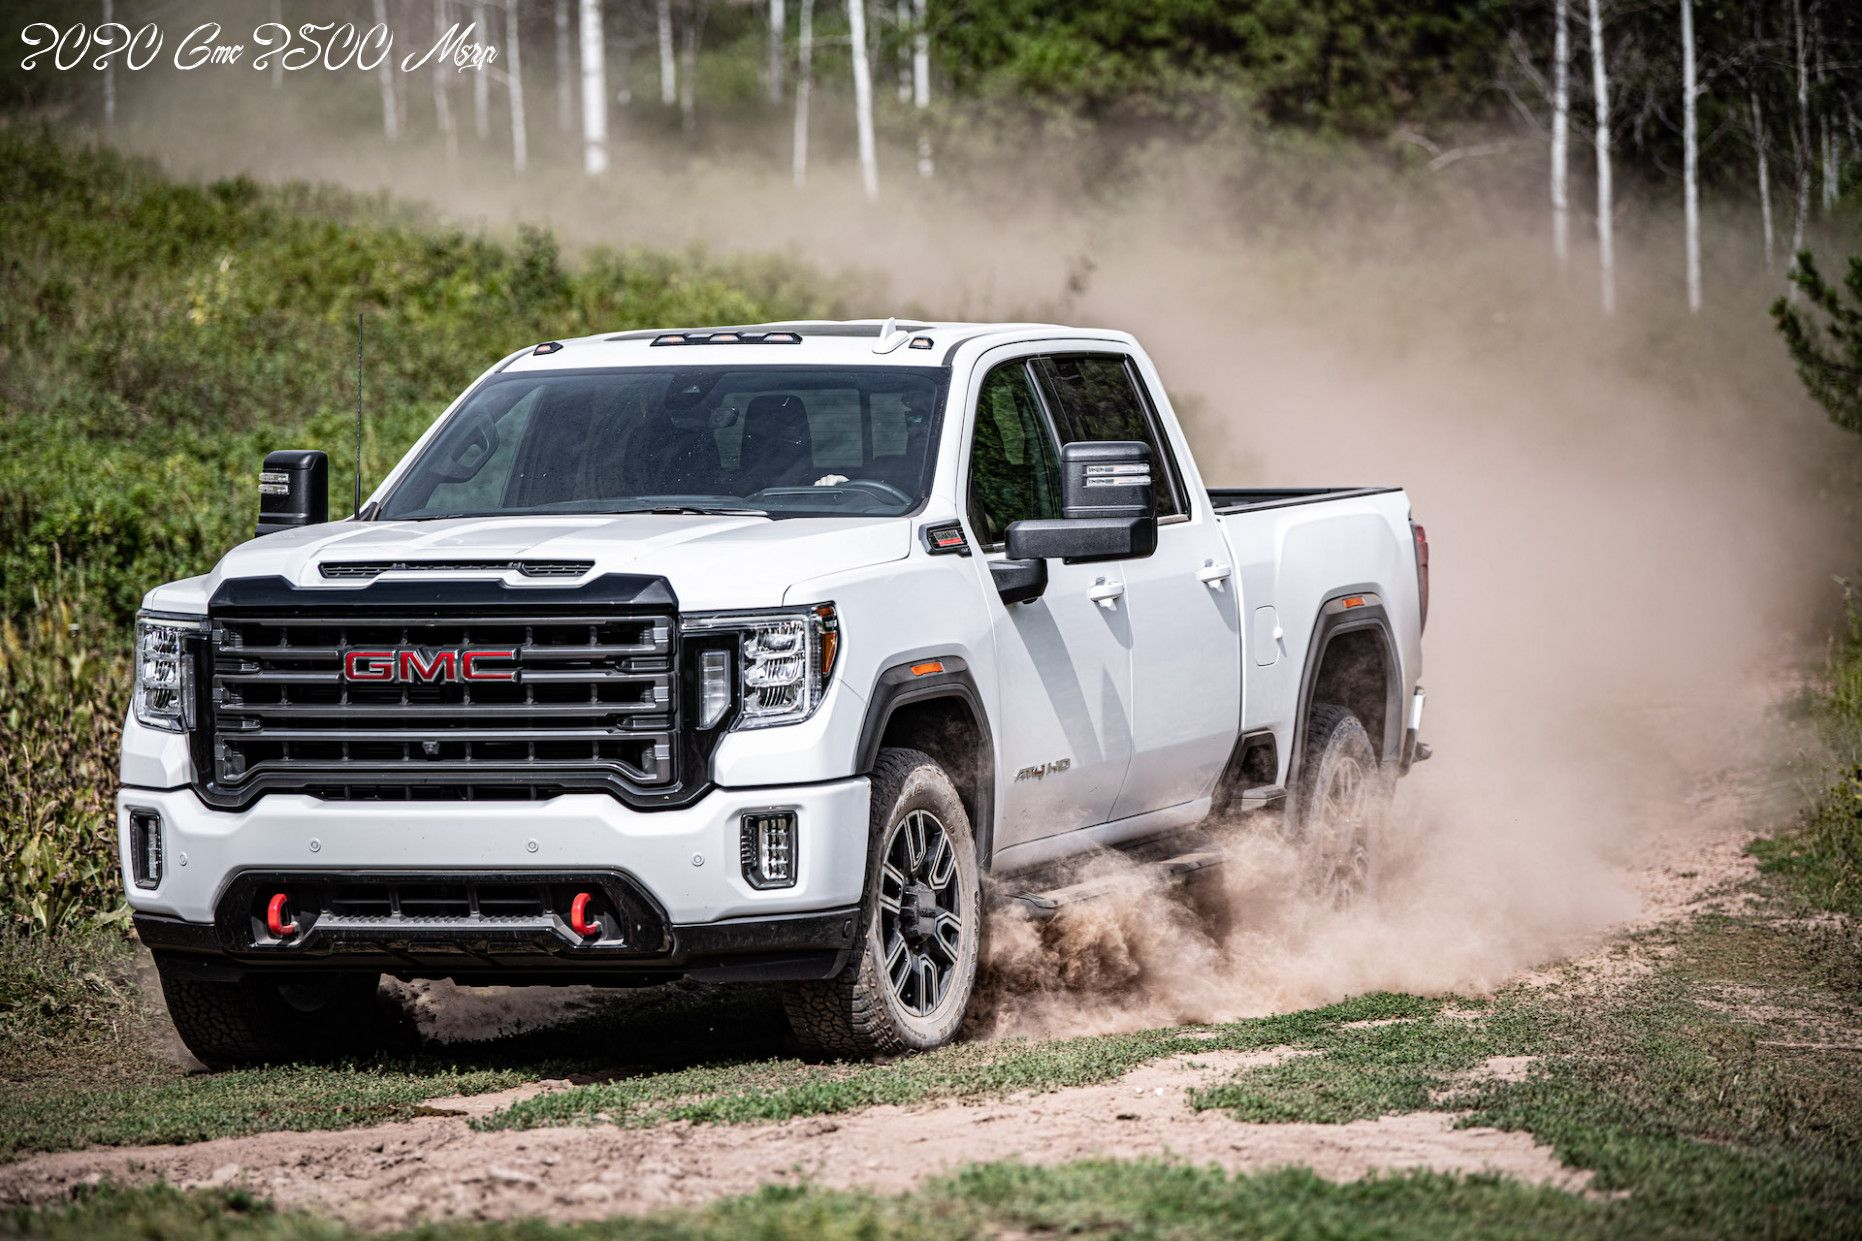 2020 Gmc 2500 Msrp Pictures In 2020 Gmc 2500 Gmc Sierra 2500hd Gmc